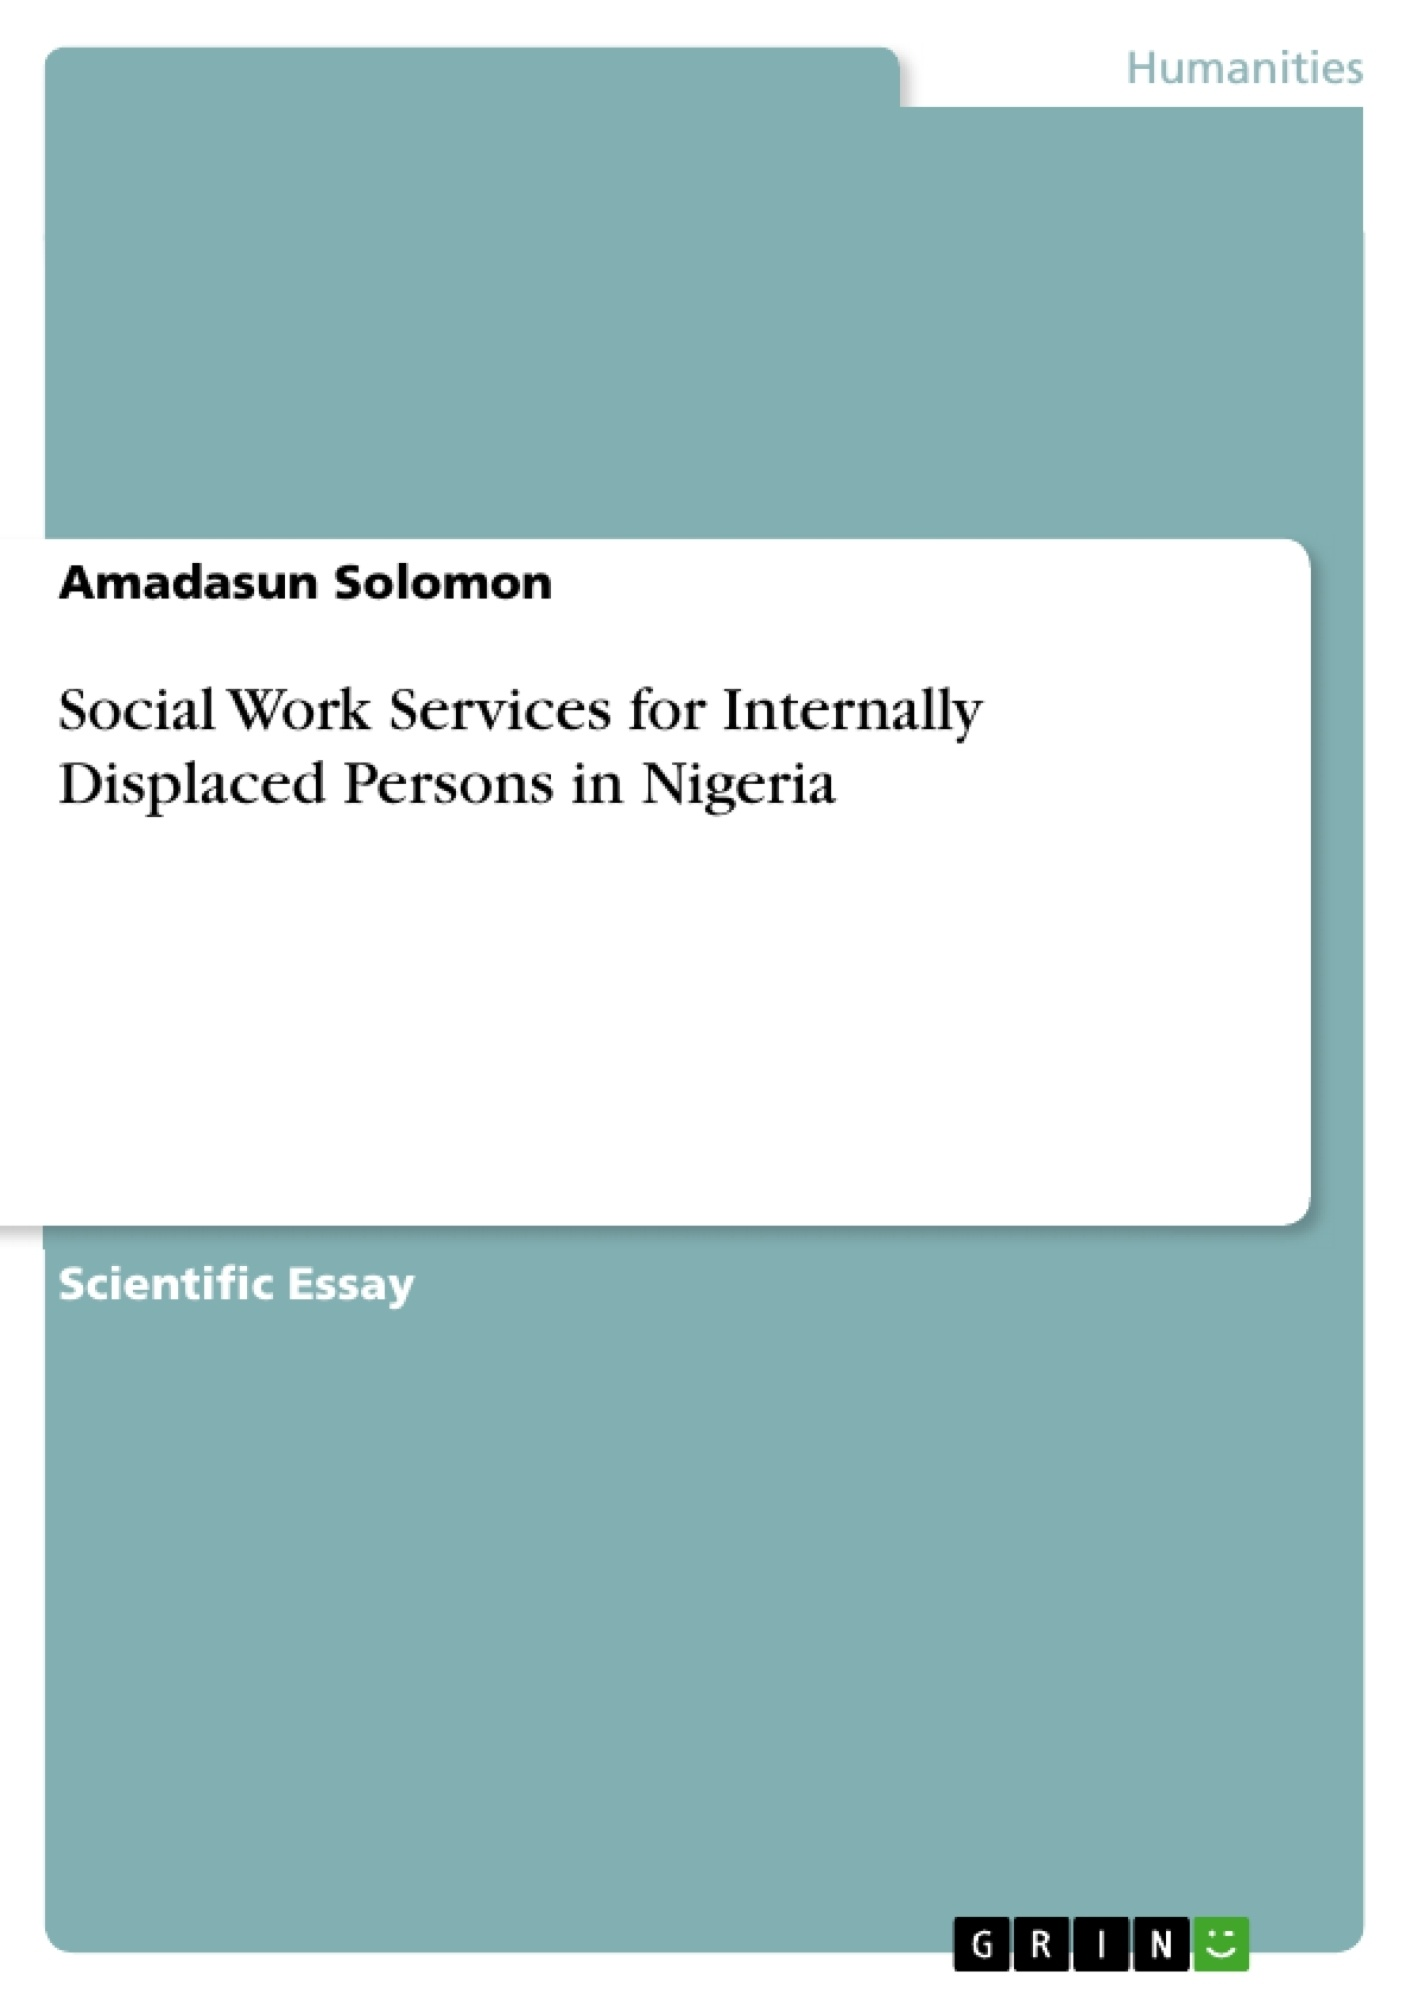 Title: Social Work Services for Internally Displaced Persons in Nigeria